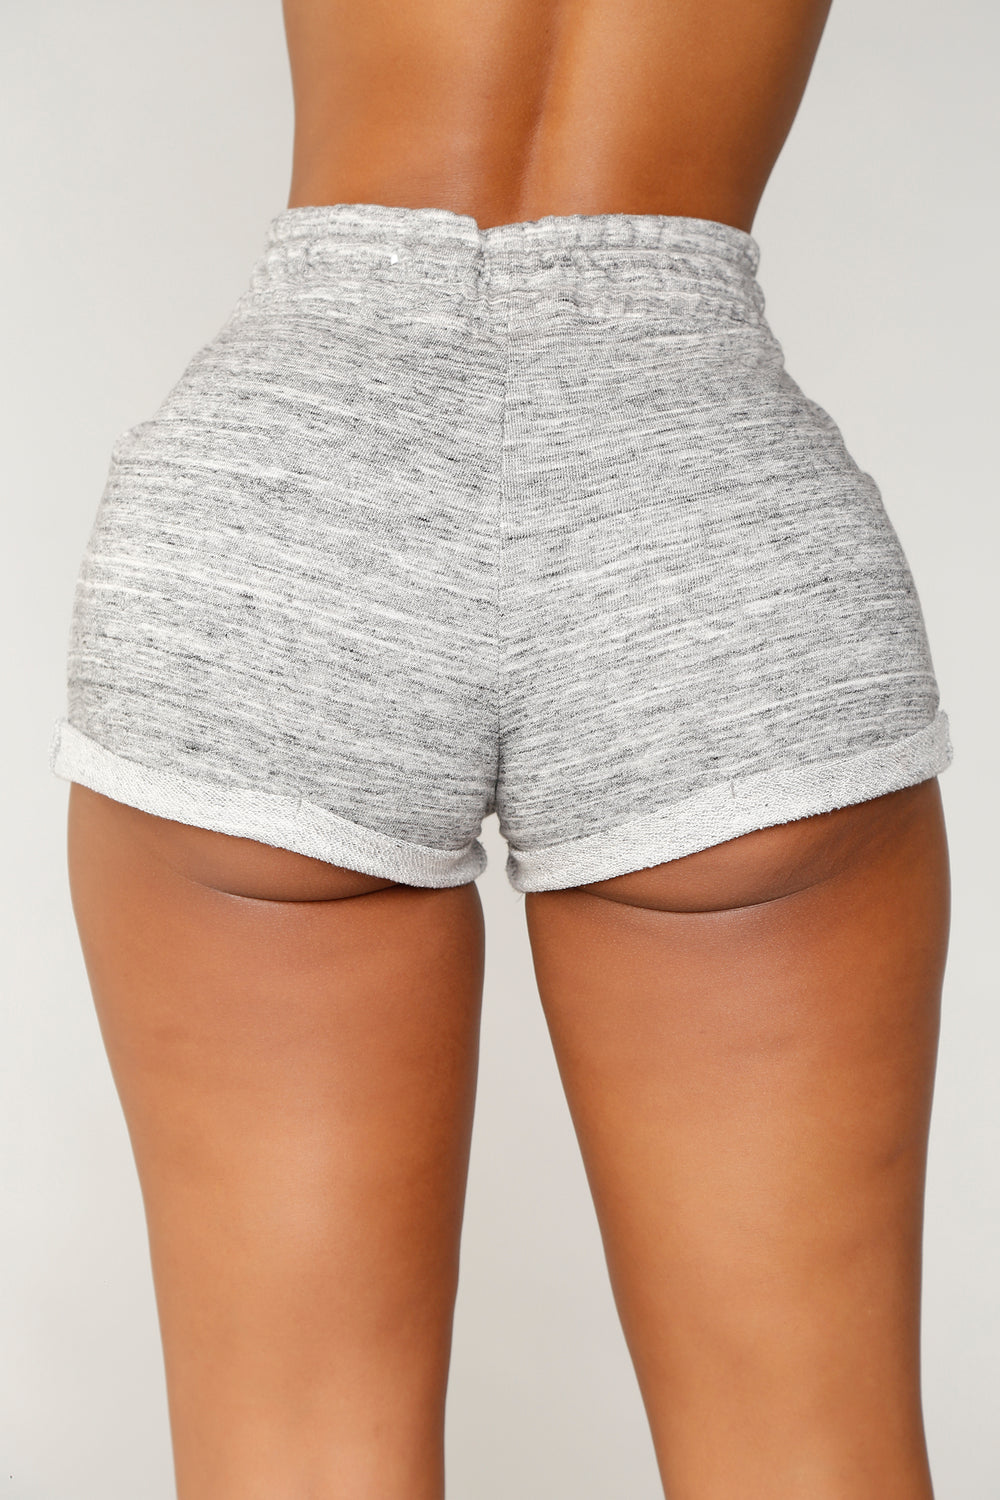 Myra Roll Up Shorts - Charcoal